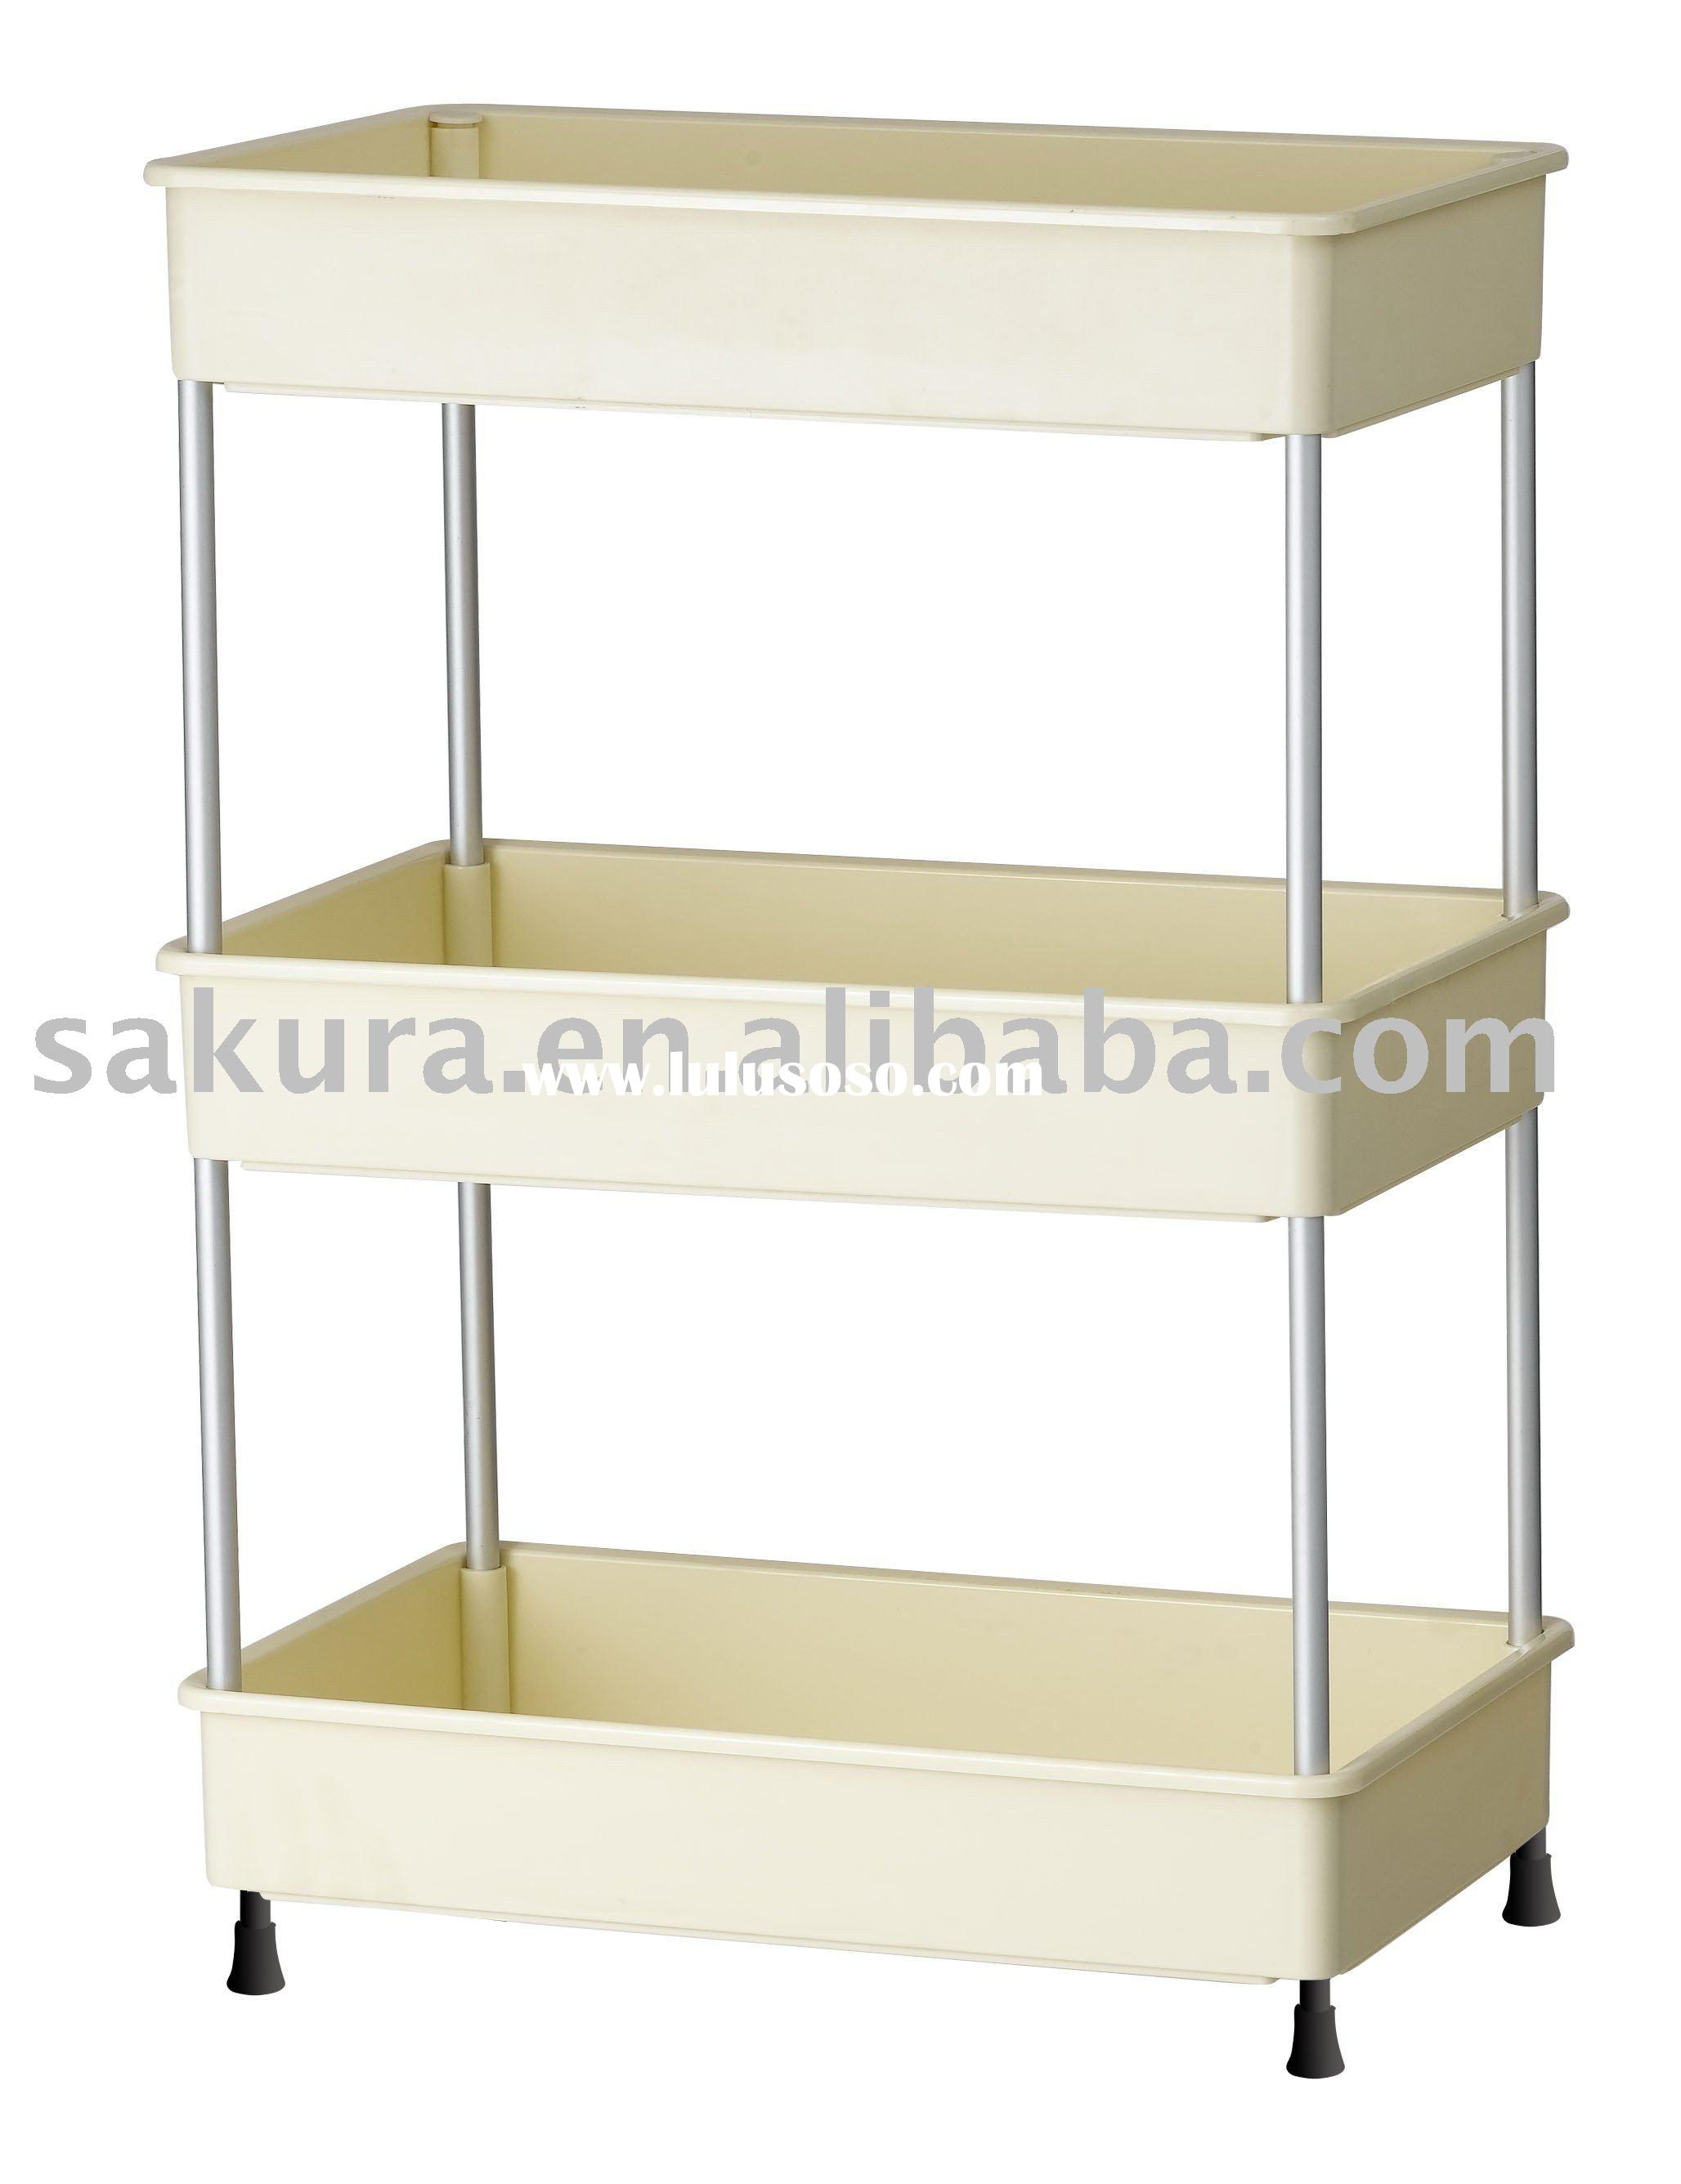 Plastic Storage Shelf